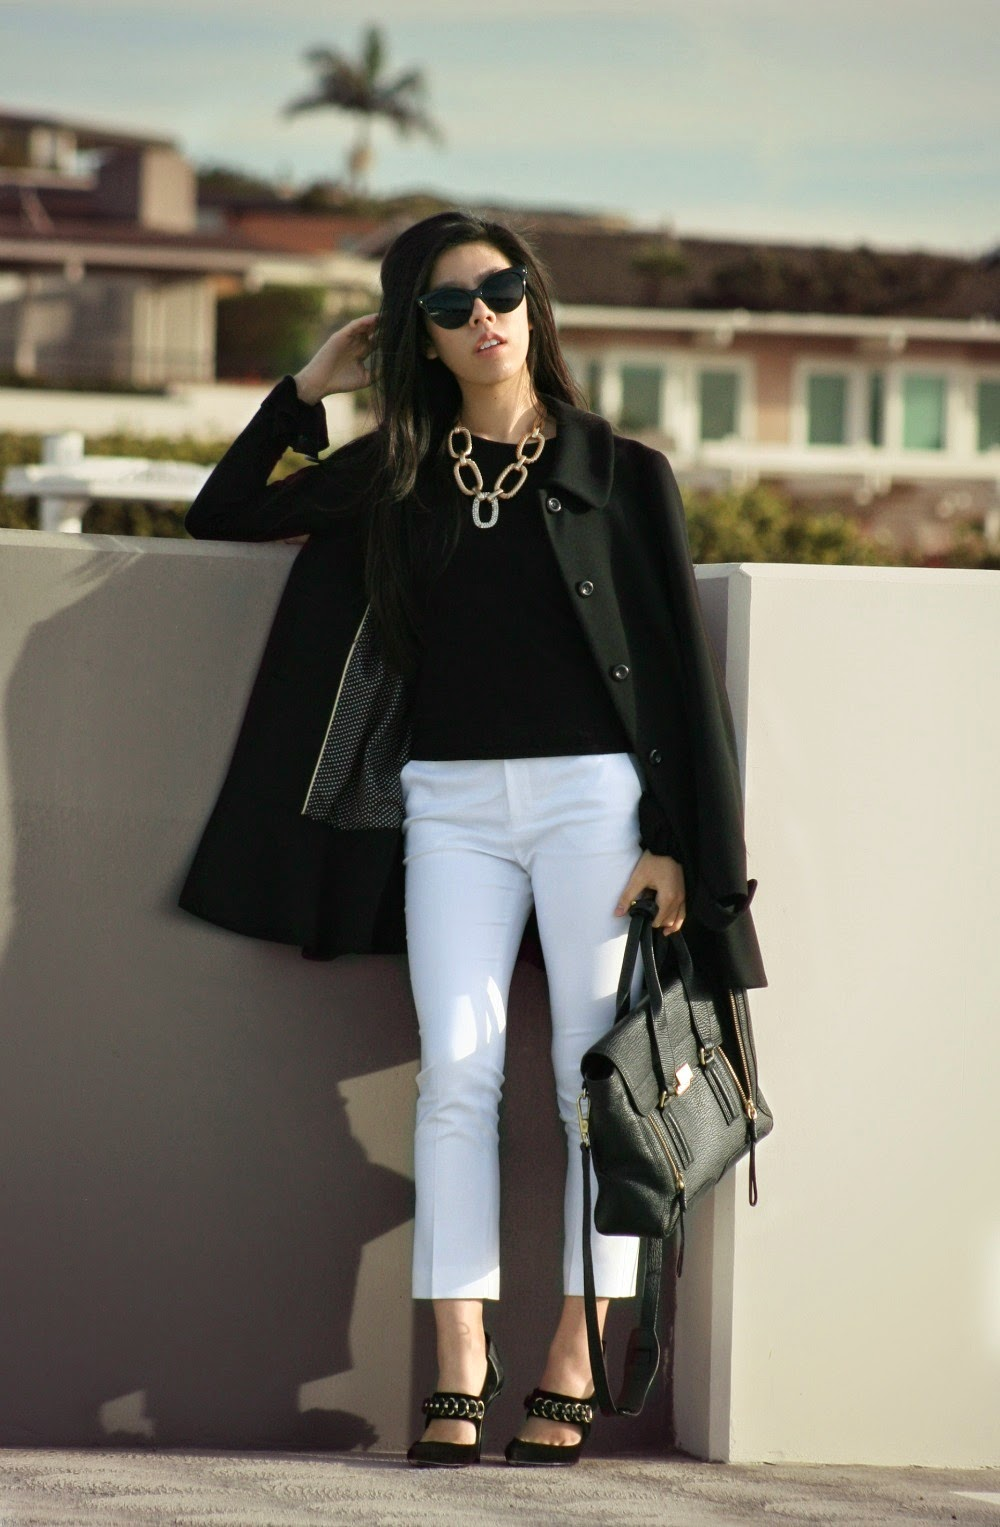 Business Casual - Women's Black and White